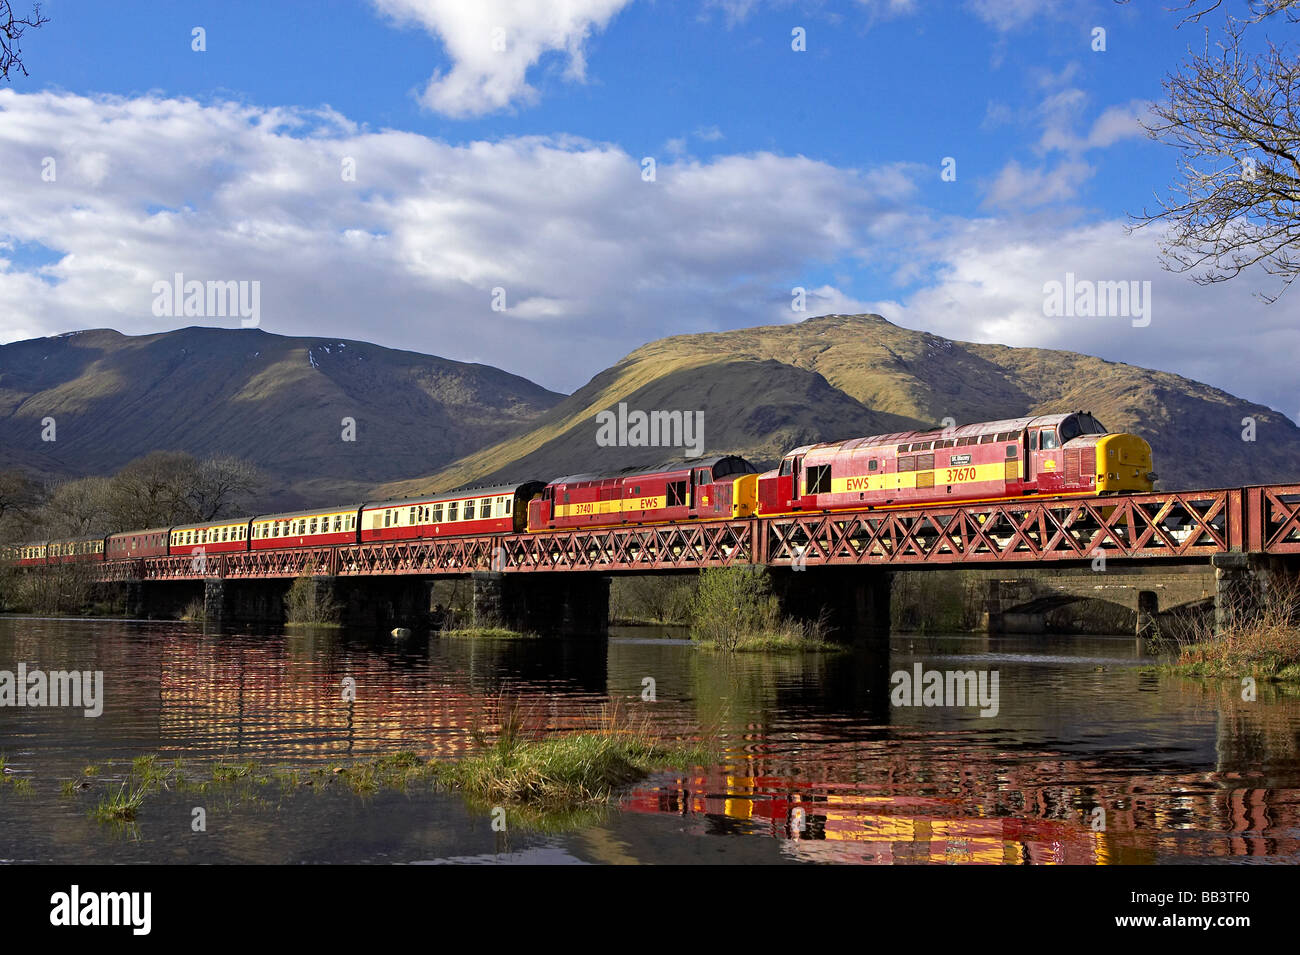 Railtour / Landcruise on the West Highland Line from Oban to Fort William seen crossing Loch Awe. - Stock Image